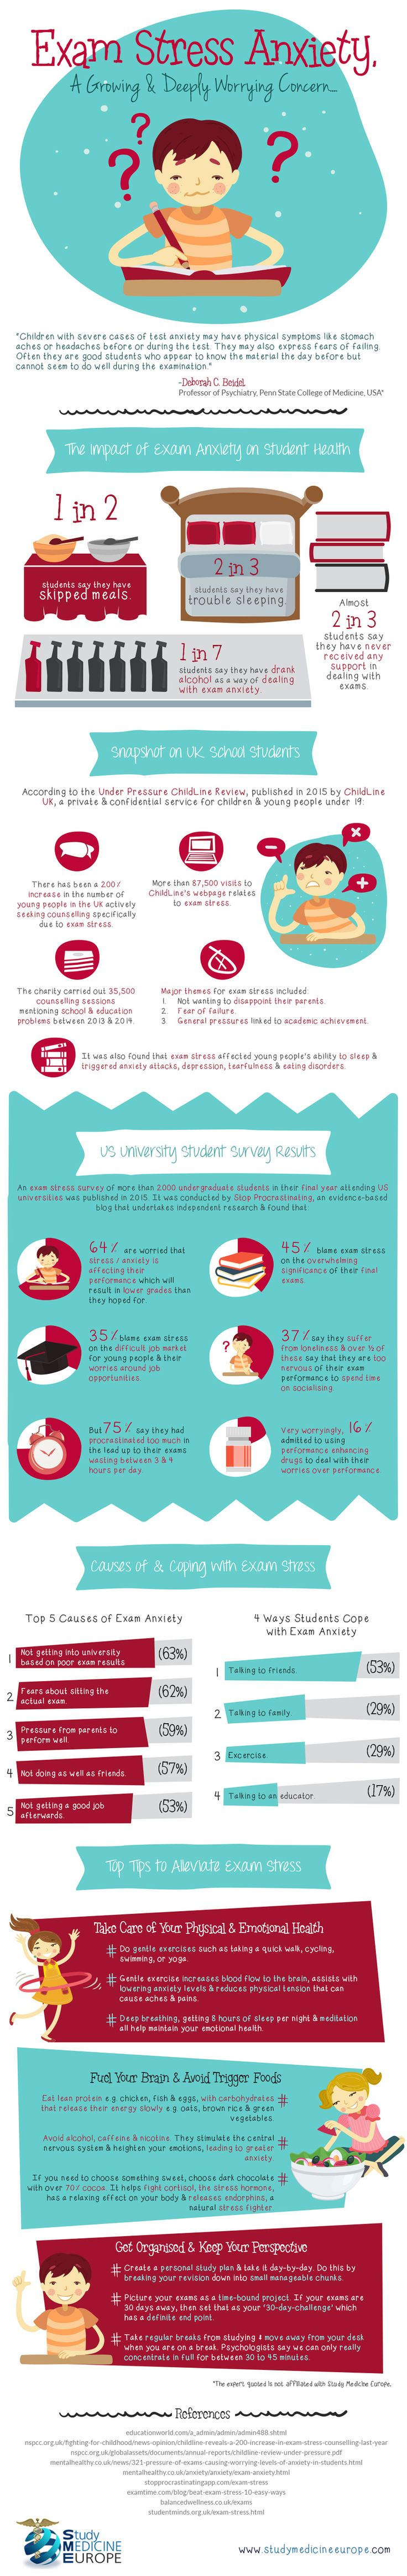 How to Cope With Stress During Exams Infographic - http://elearninginfographics.com/cope-with-stress-during-exams-infographic/